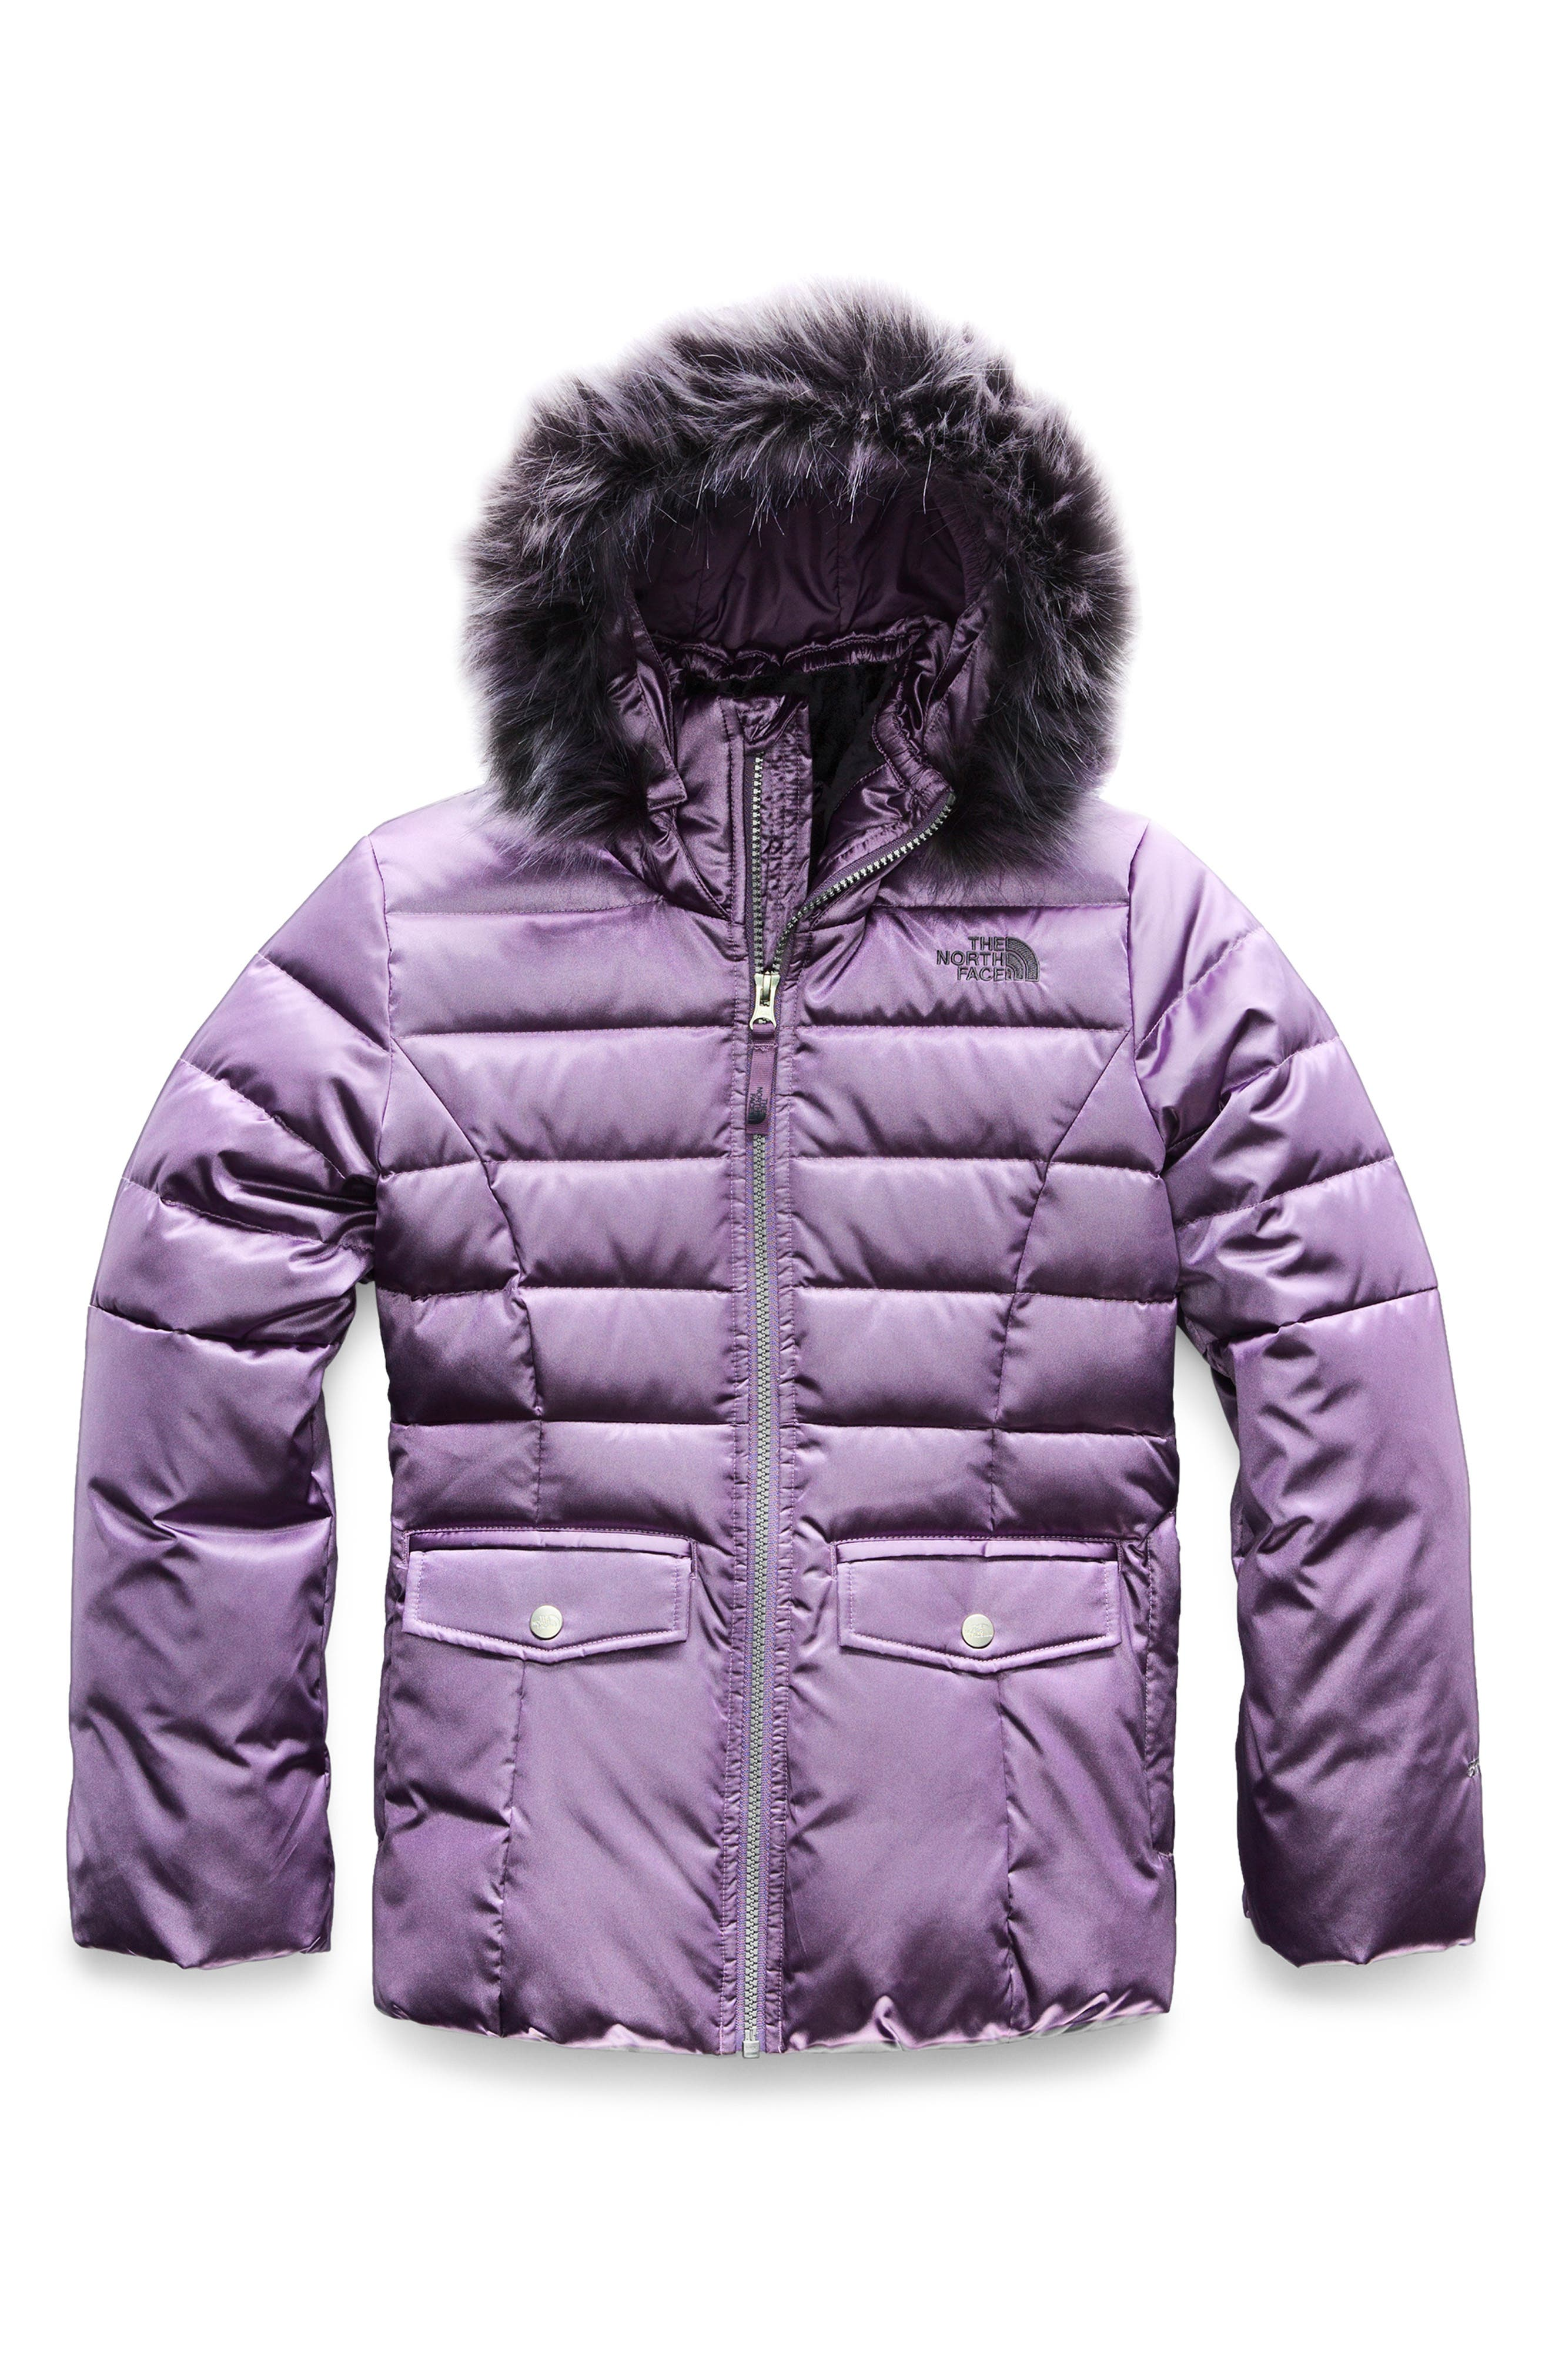 THE NORTH FACE Gotham 2.0 Water Resistant 550-Fill-Power Down Jacket with Faux Fur Trim, Main, color, PURPLE SAGE